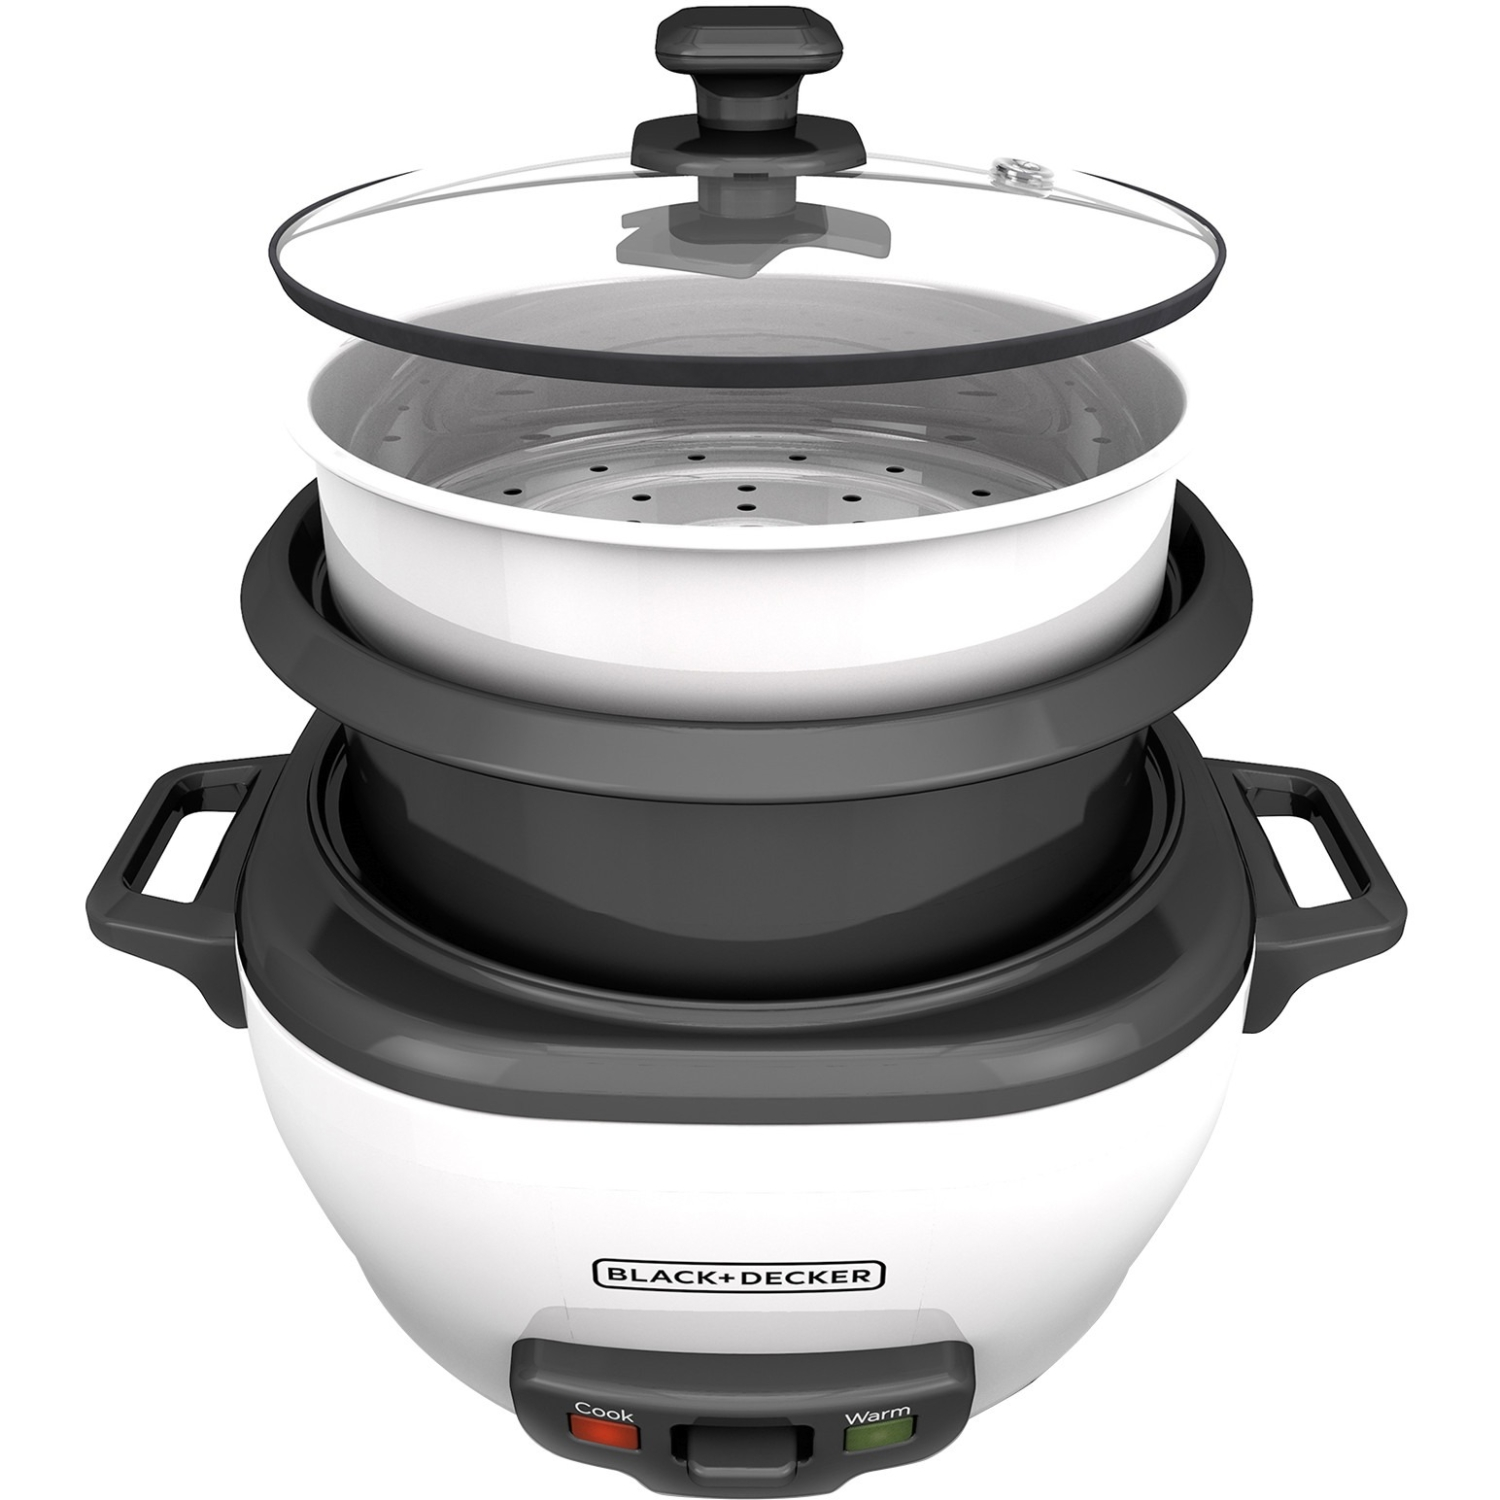 BLACK+DECKER 3-Cup Rice Cooker and Steamer Basket, White, RC503